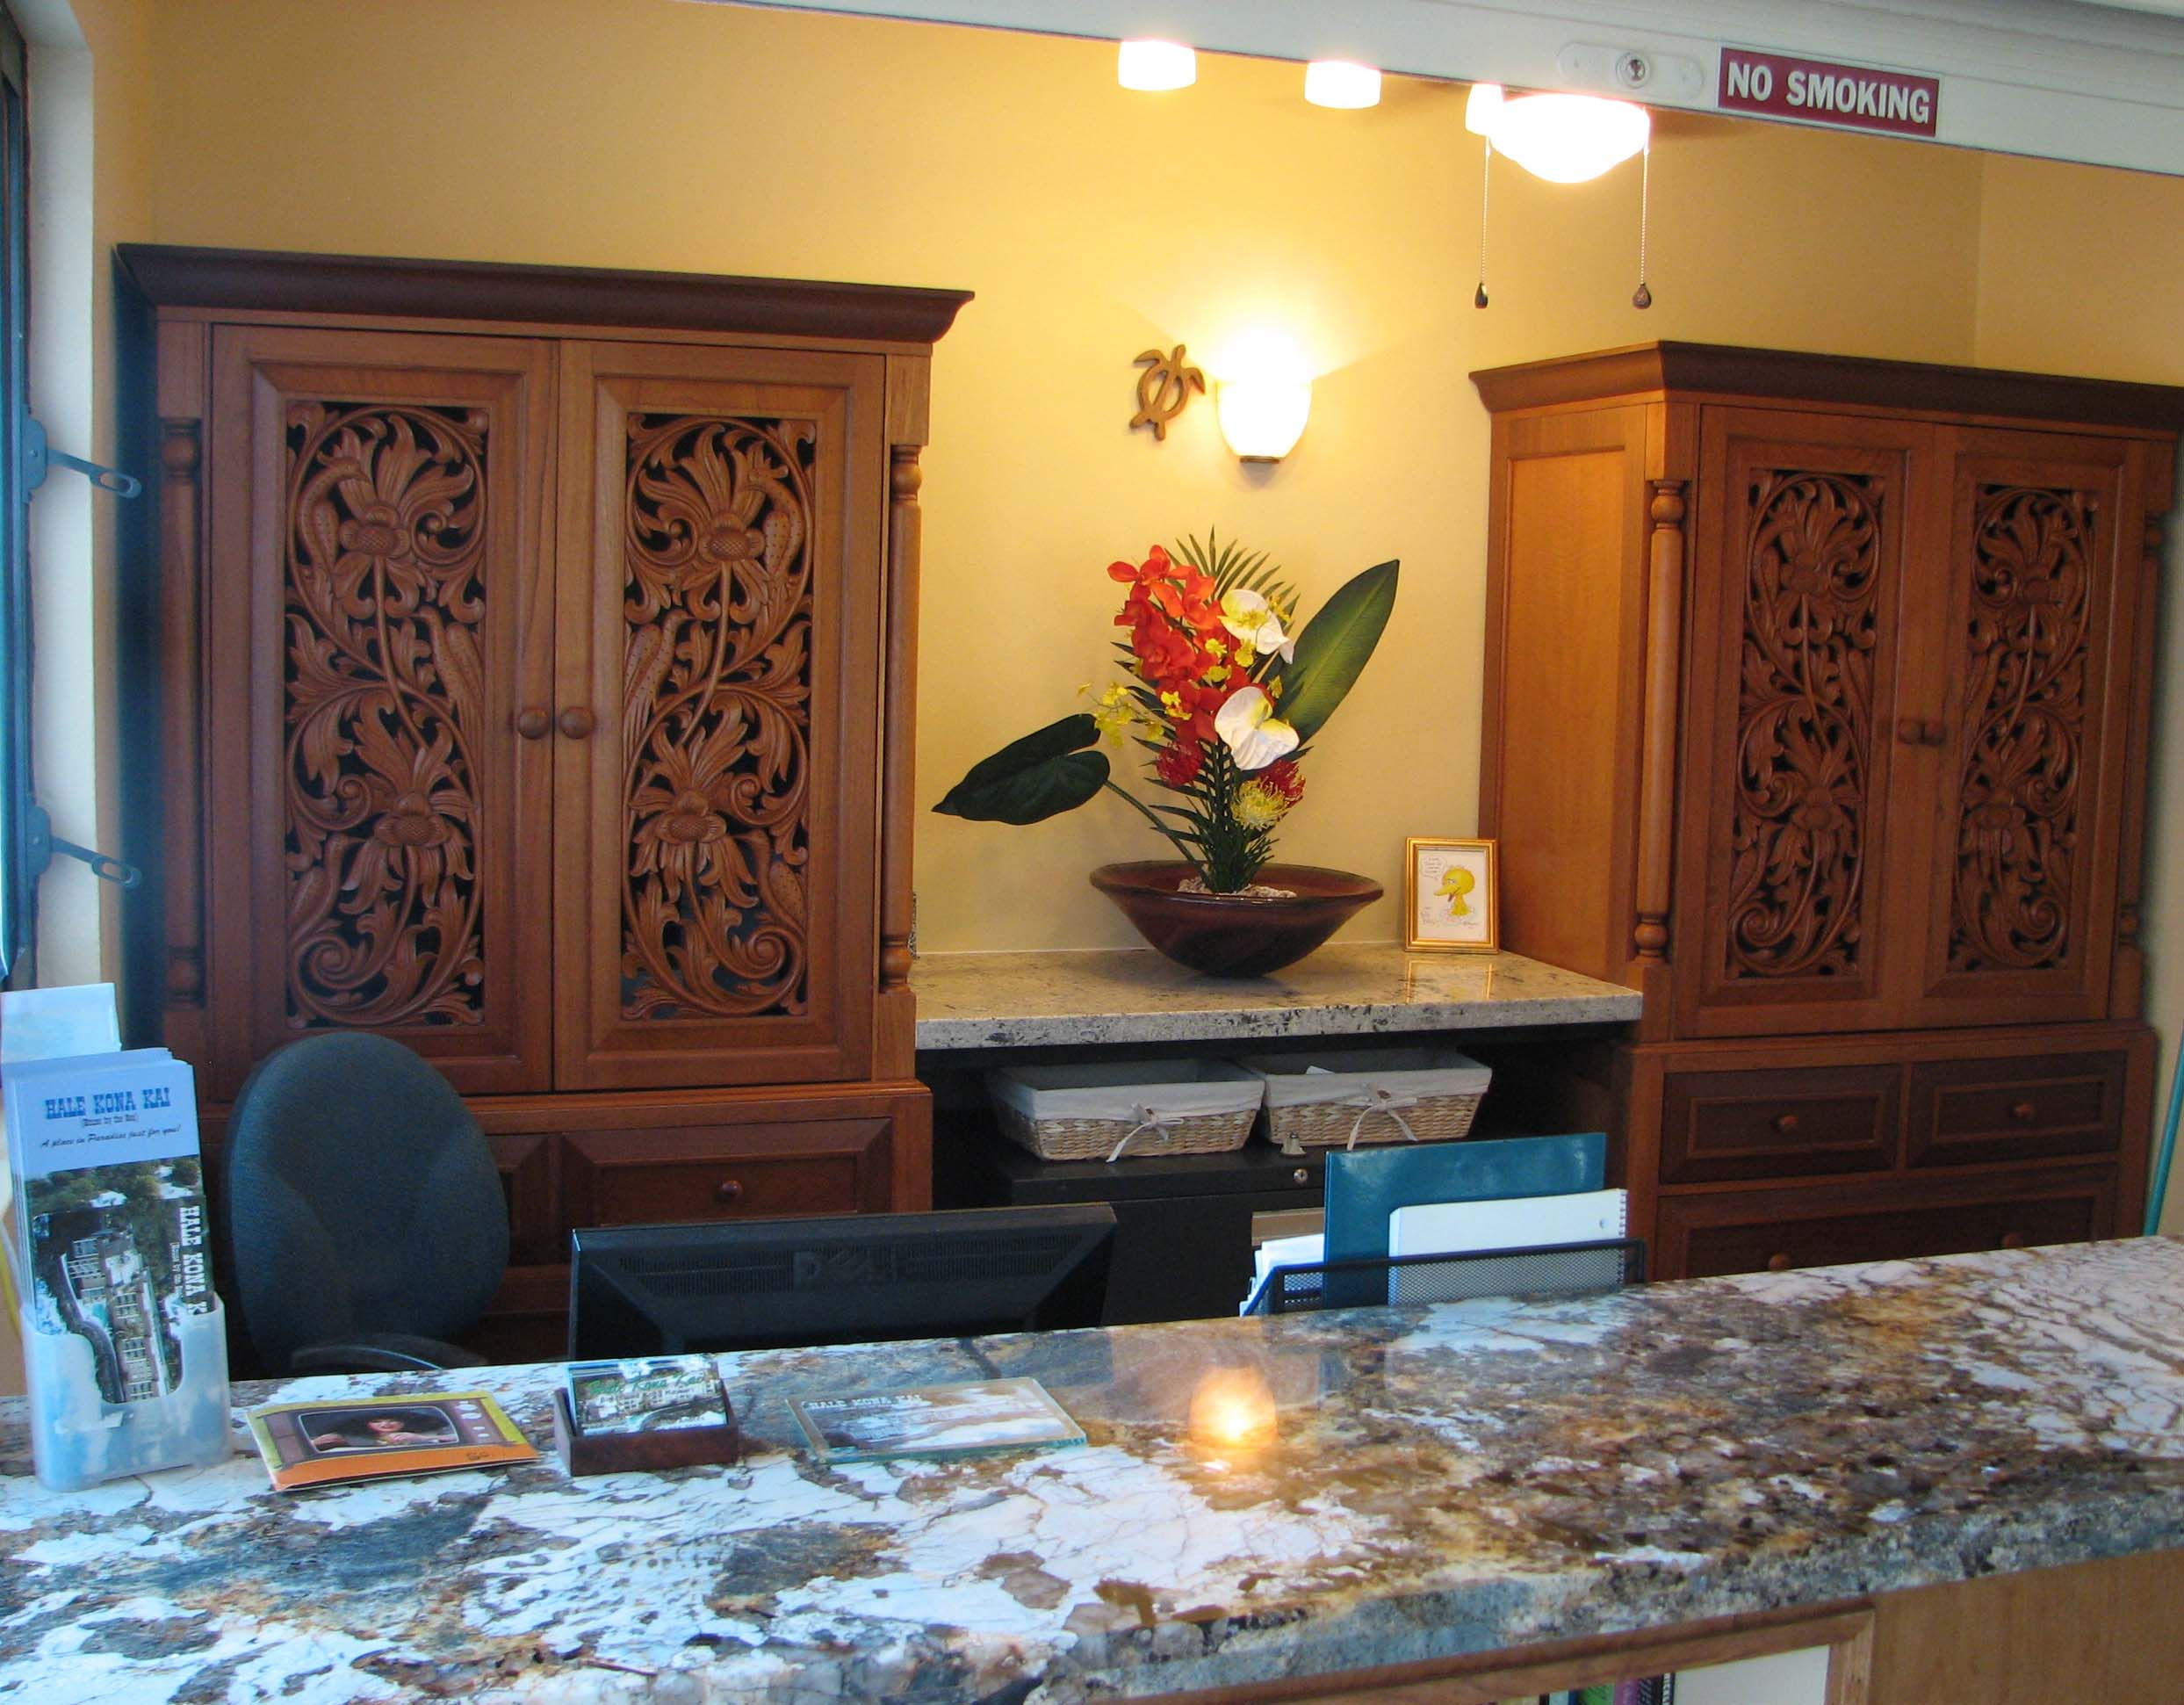 When you rent one of our Kona Now Hale Kona Kai condos you have our on-site office to help you make your vacation a special one.